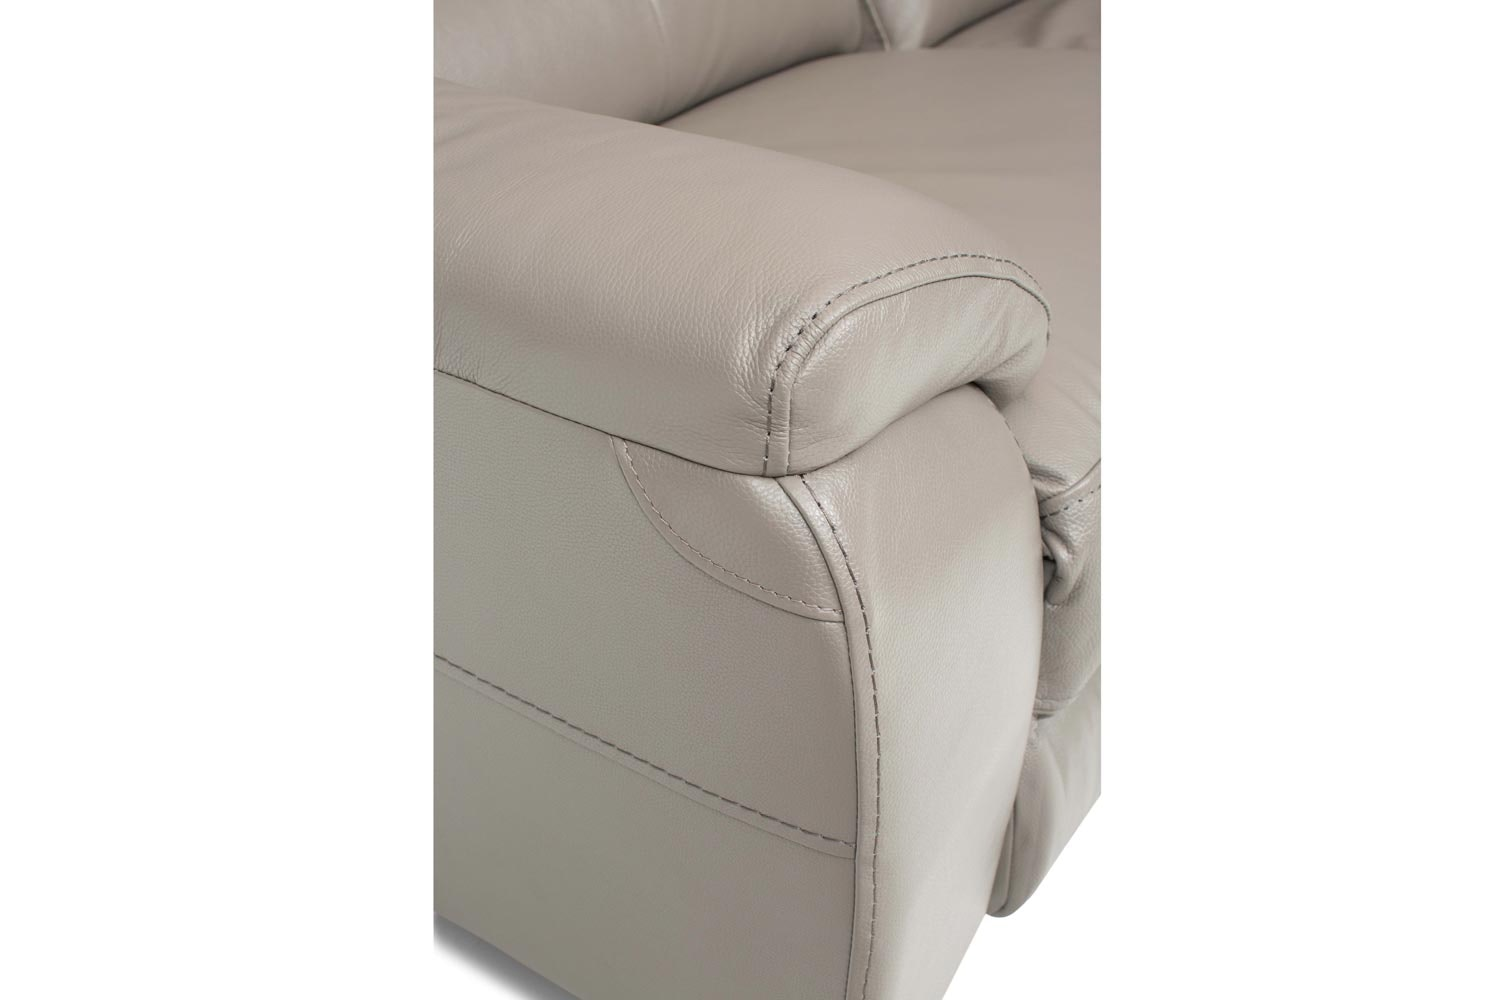 ... Yvezza 3 Seater Electric Recliner Sofa| 5 Colour Options ...  sc 1 st  Harvey Norman & Yvezza 3 Seater | Grey | Ireland islam-shia.org